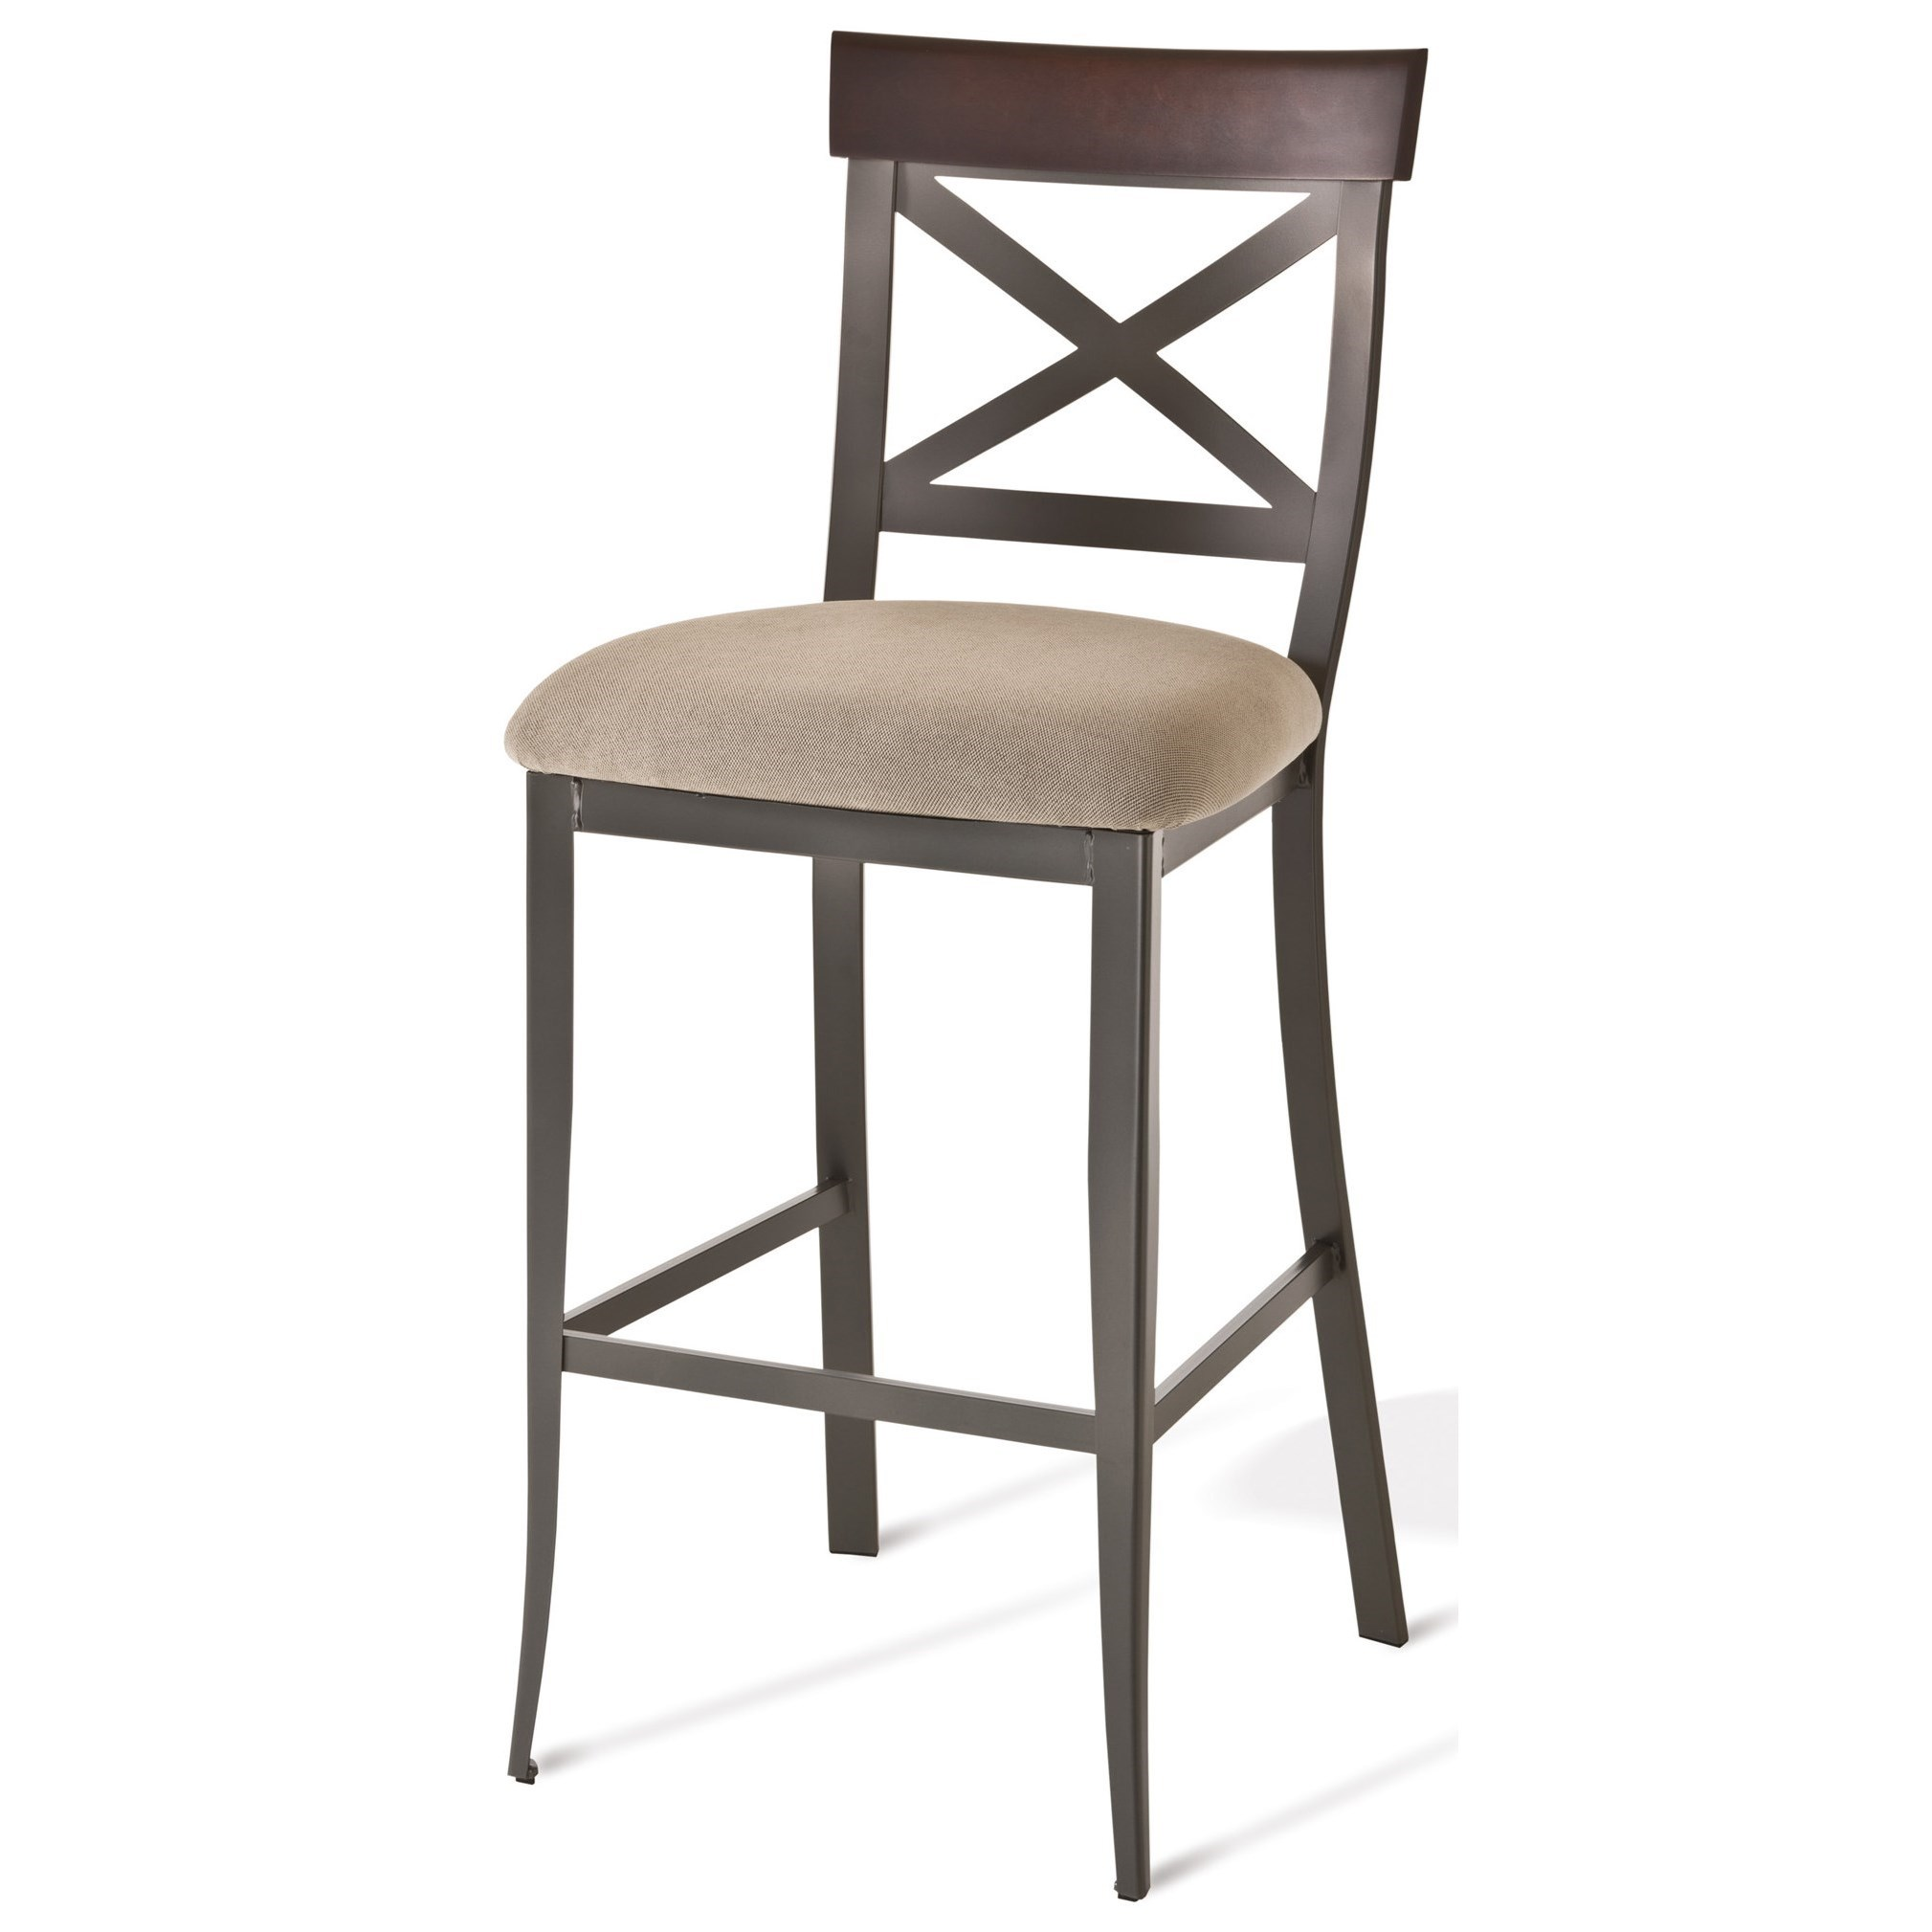 "Countryside 30"" Kyle Bar Stool with Upholstered Seat by Amisco at Saugerties Furniture Mart"